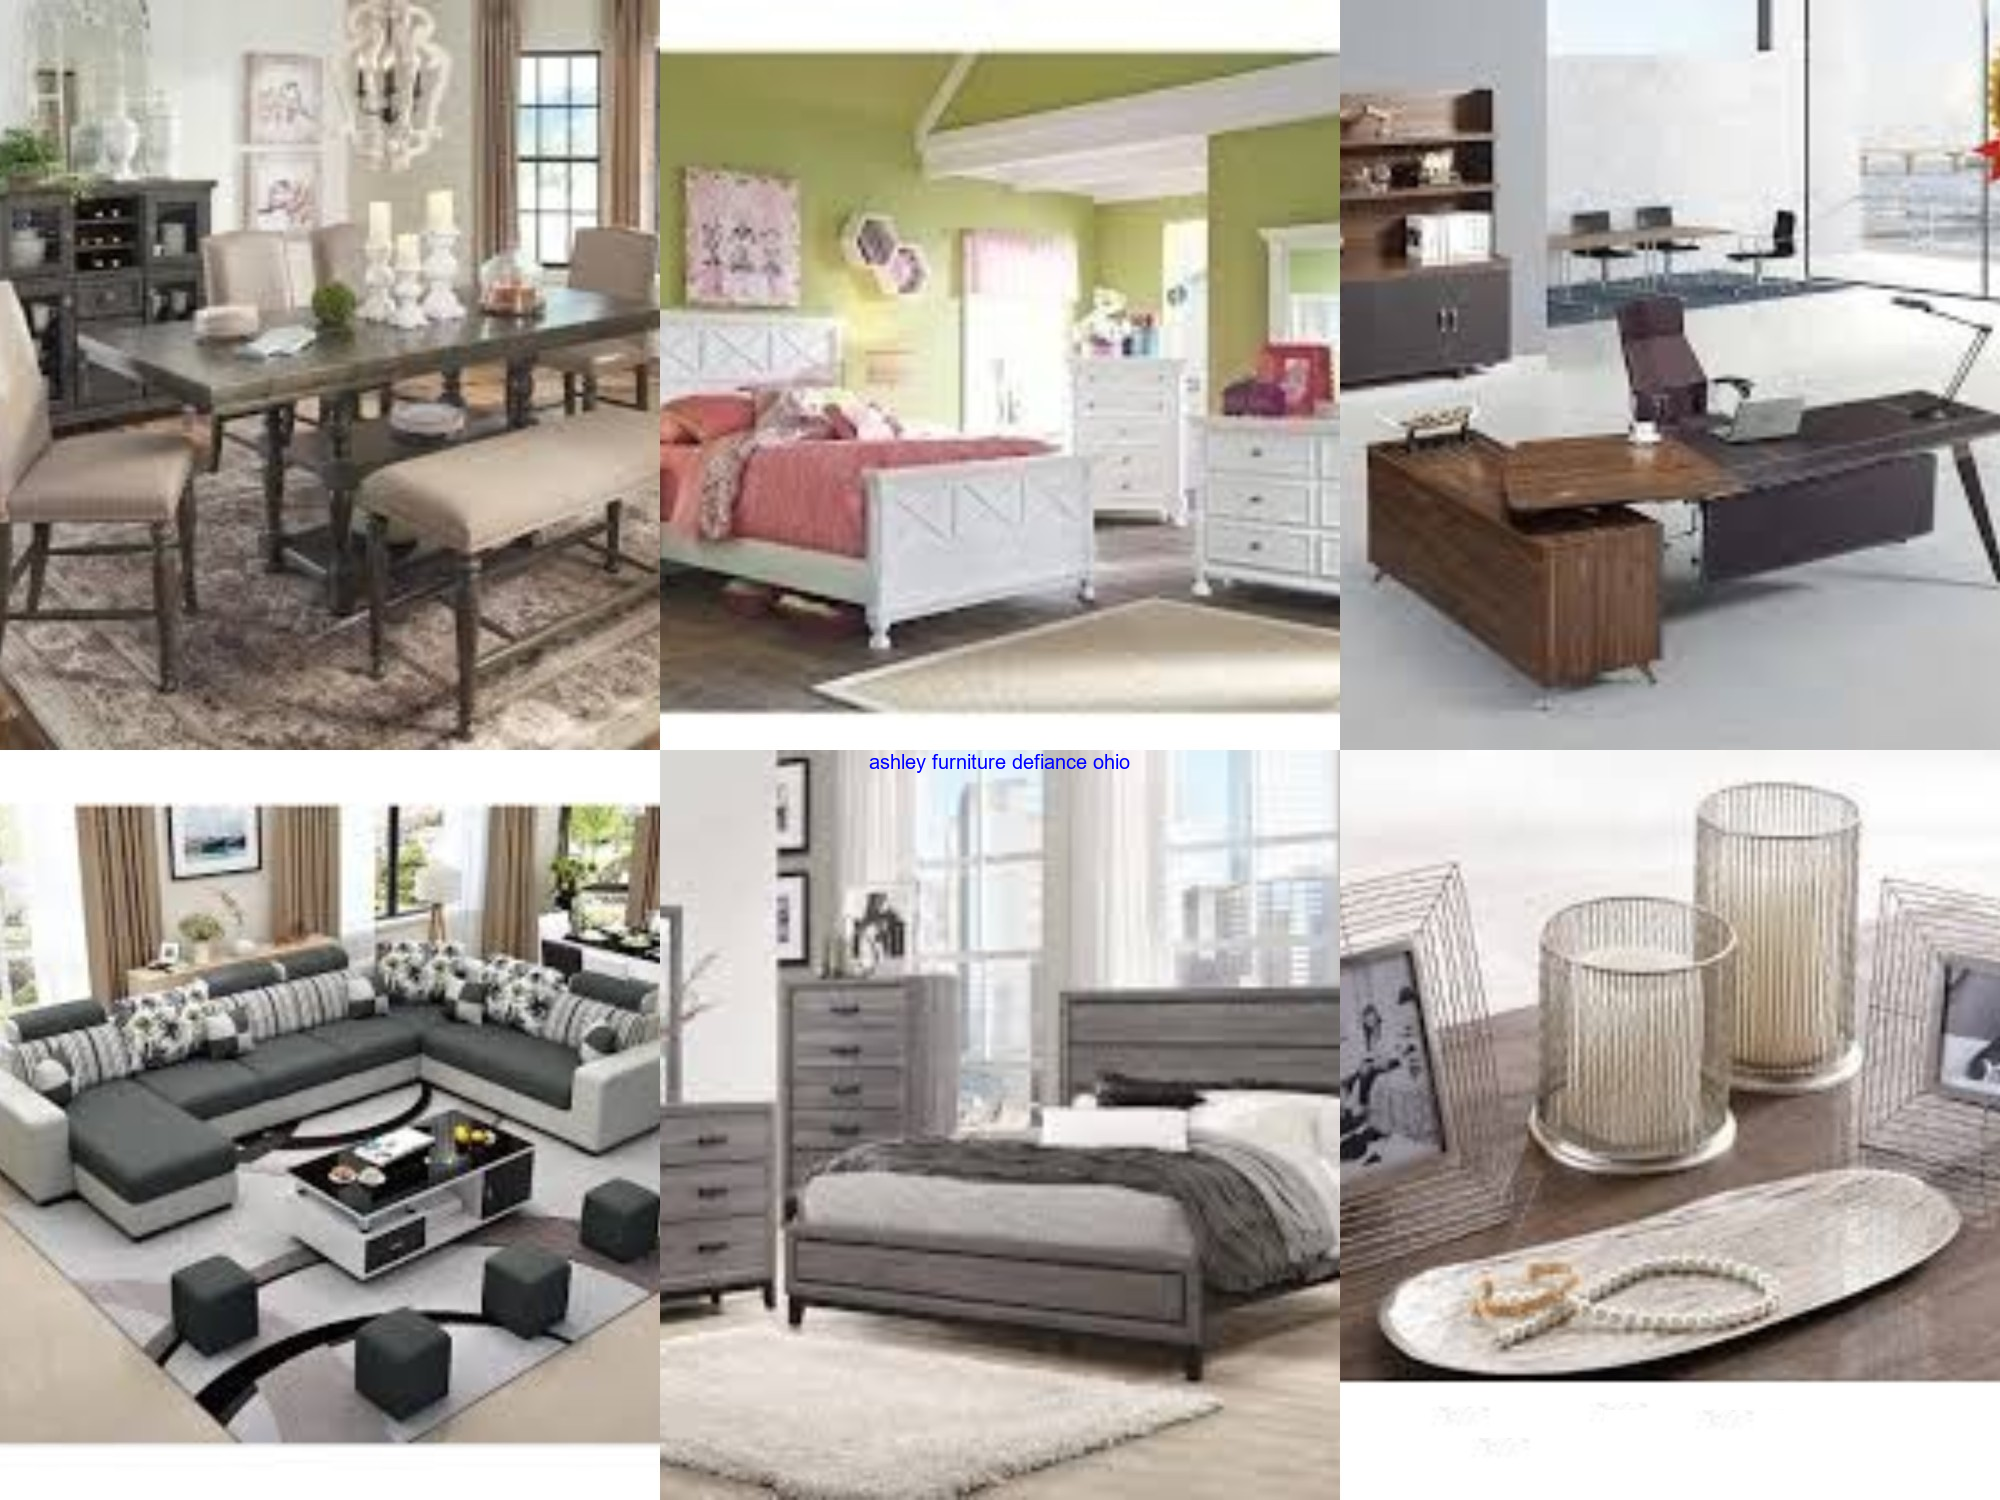 ashley furniture defiance ohio I might suggest one to